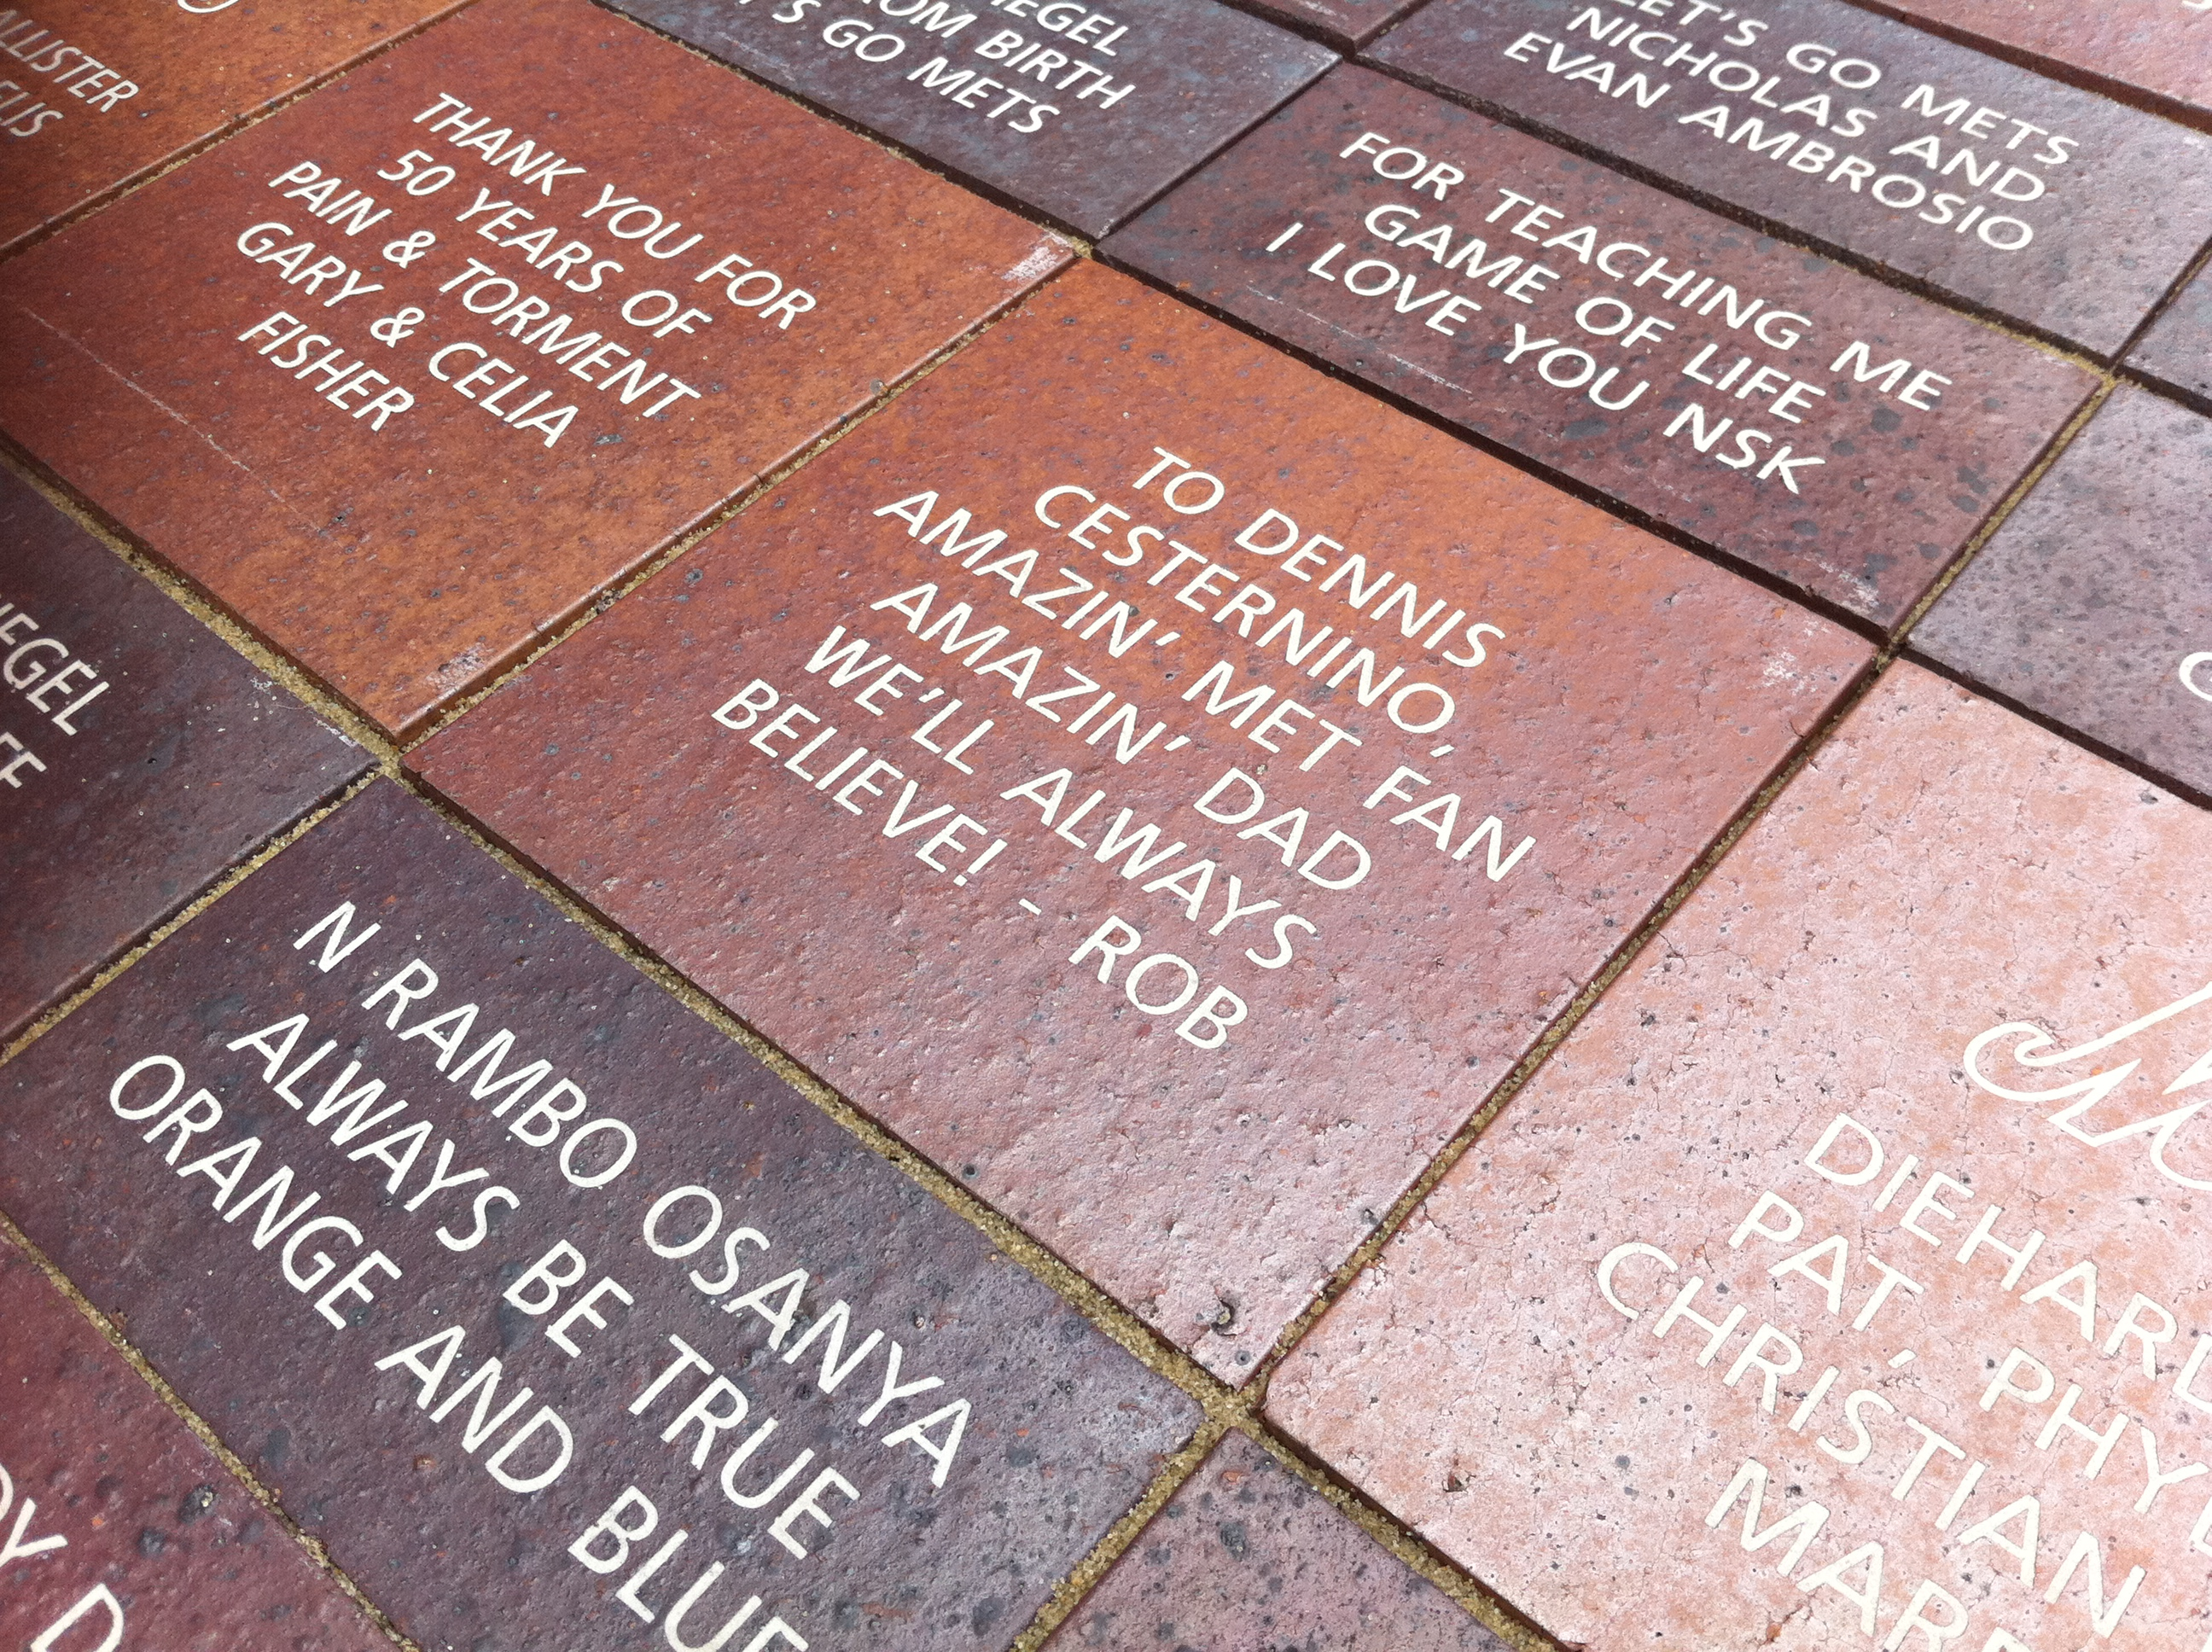 This brick is just outside of Citi Field, Home of the New York Mets